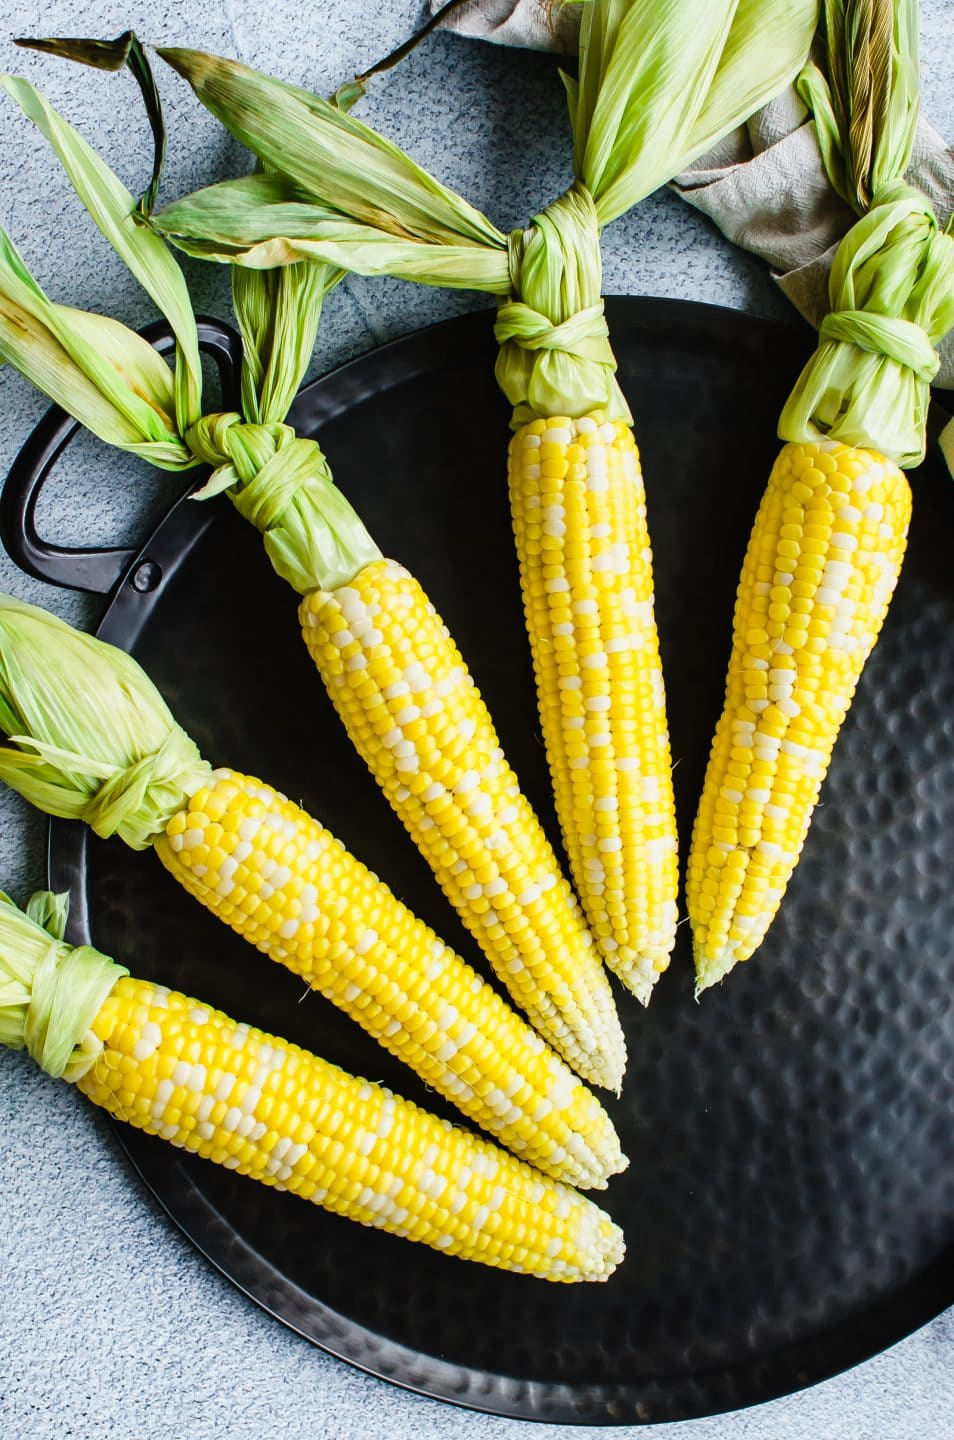 Raw corn on the cob on a black iron platter with the husks tied in knots.